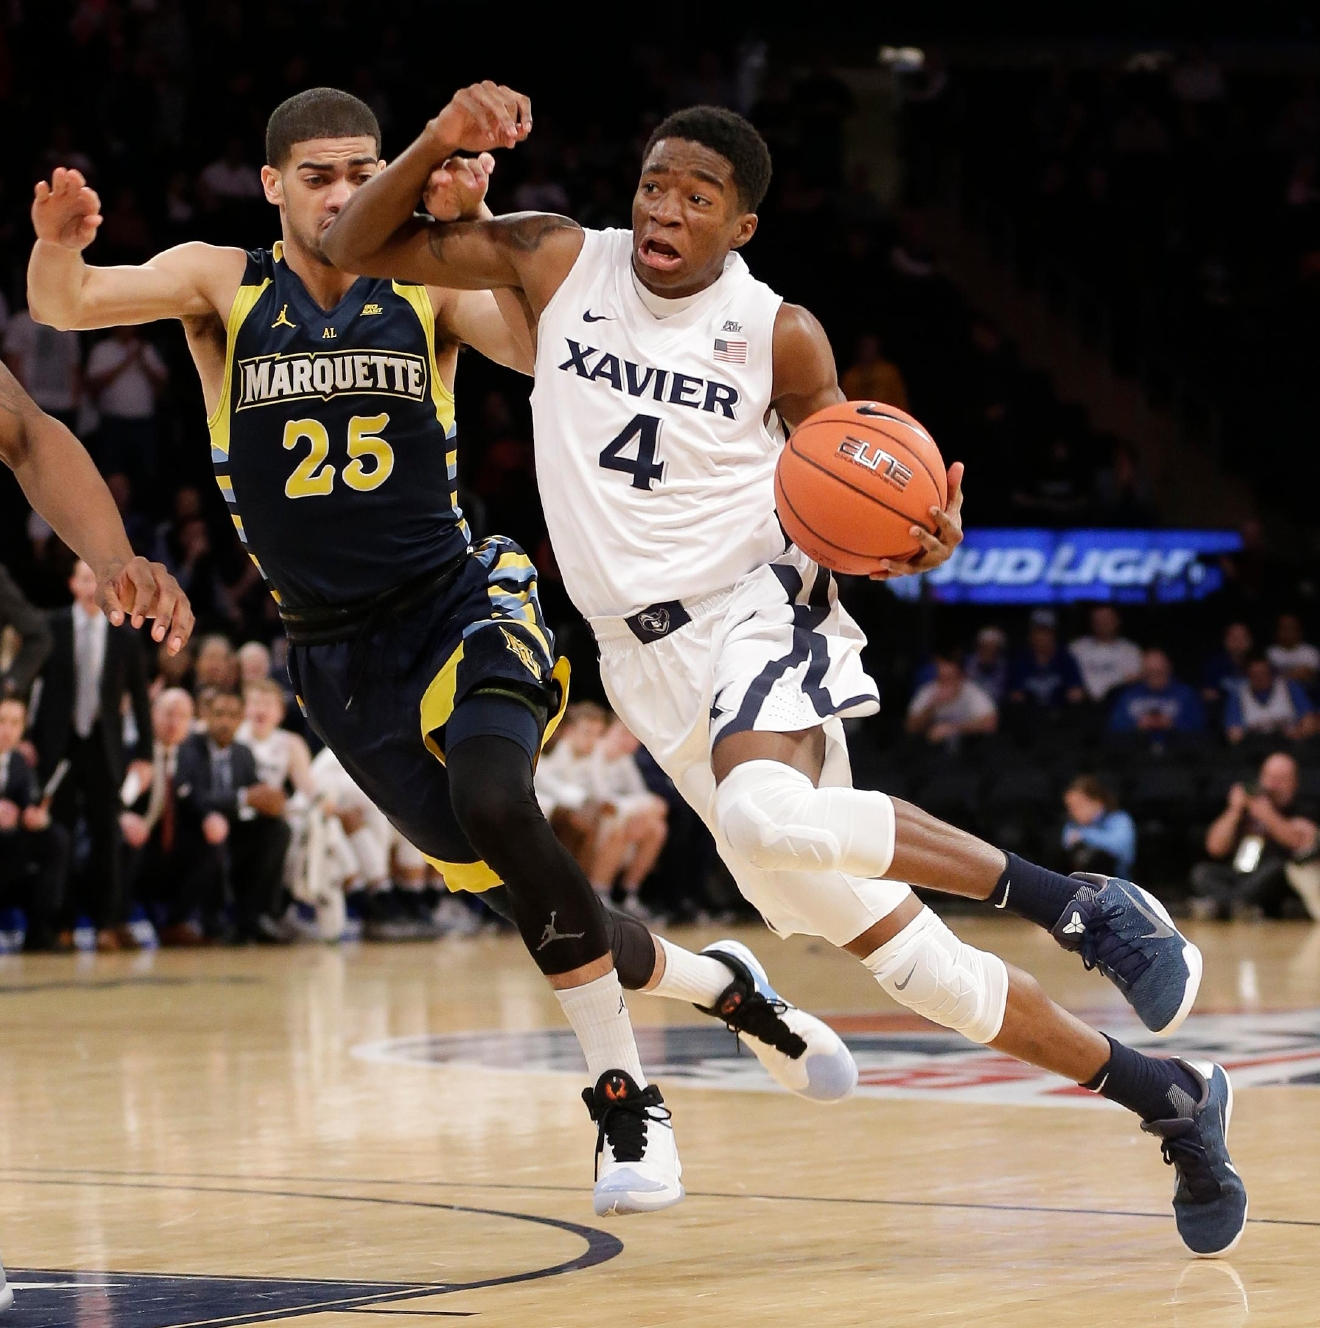 XU s Sumner candidate for 2017 Bob Cousy Award